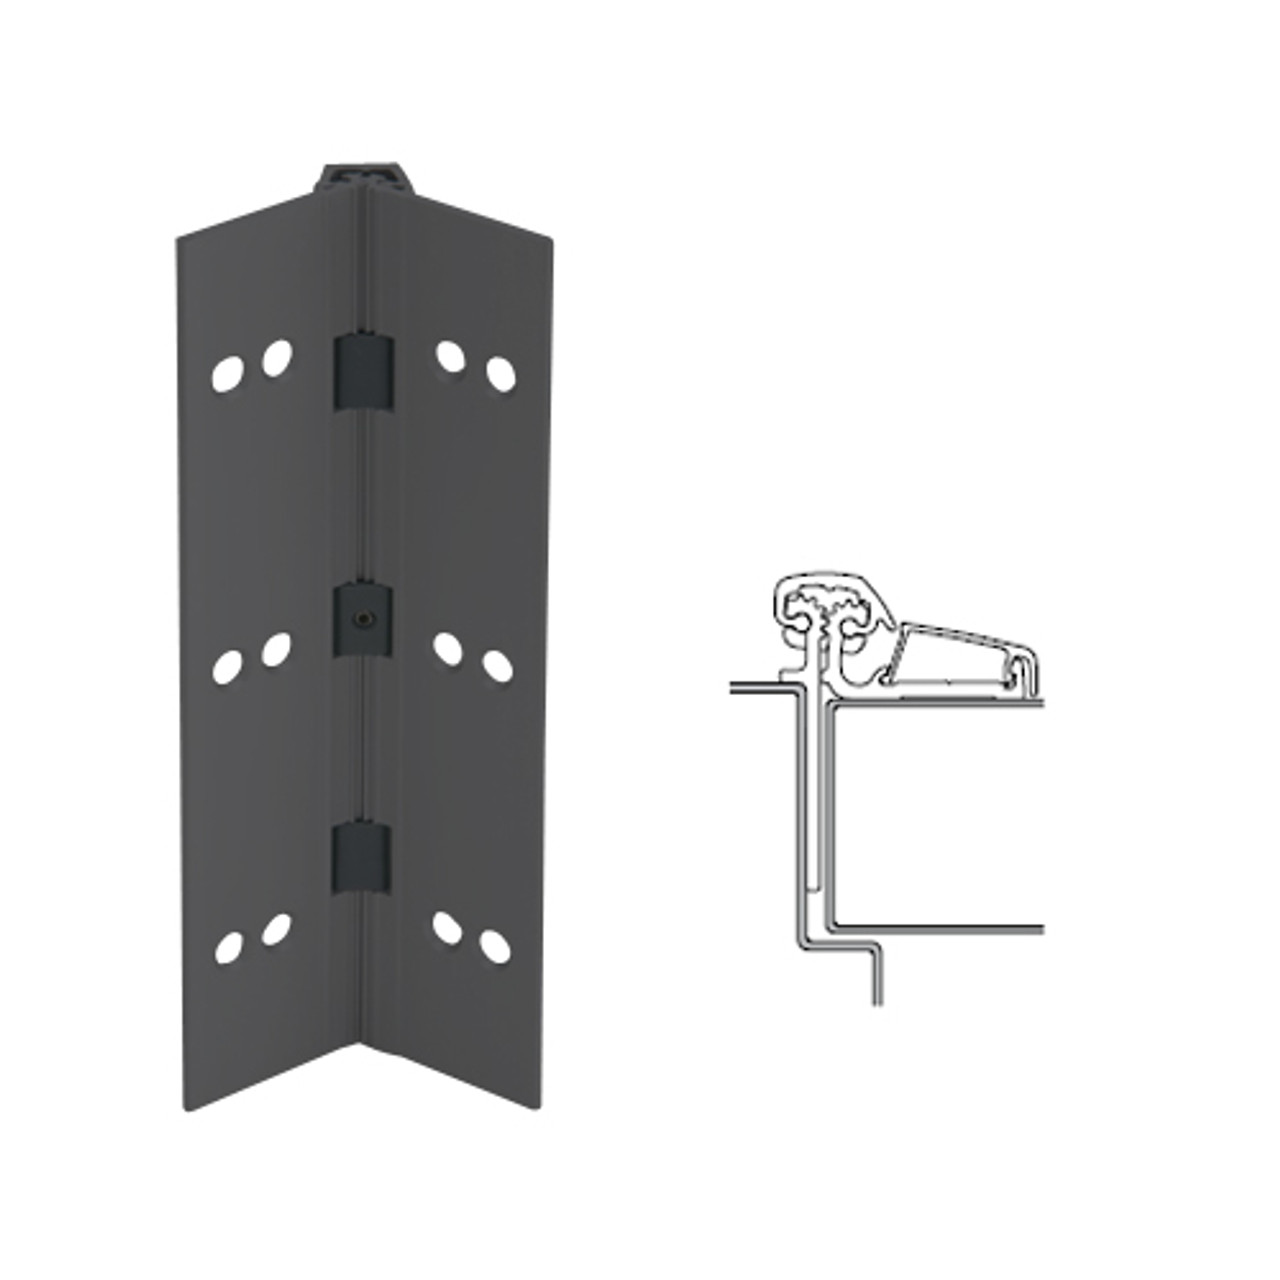 053XY-315AN-95 IVES Adjustable Half Surface Continuous Geared Hinges in Anodized Black